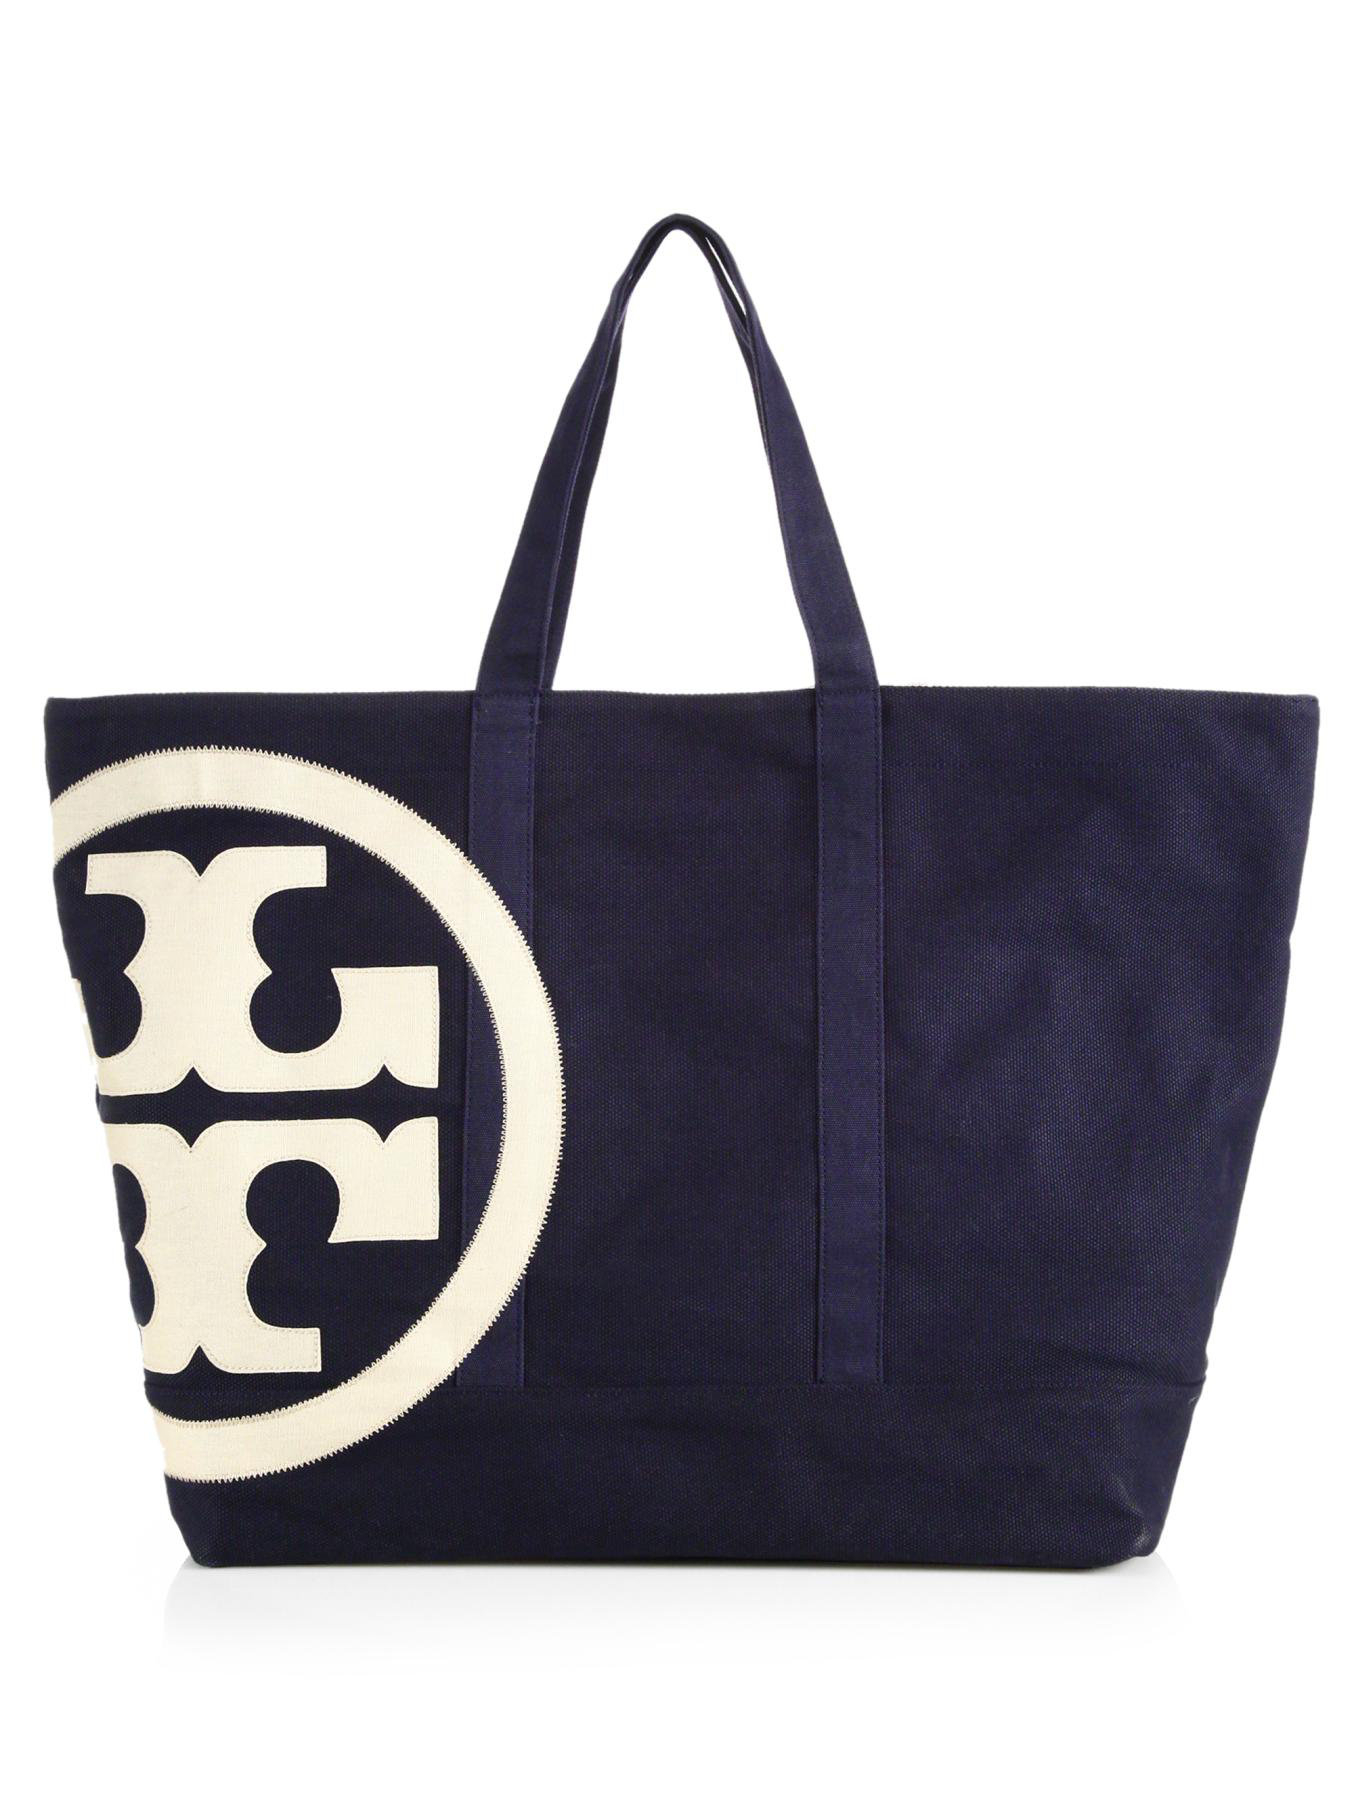 Tory burch Beach Zip Canvas Tote in Blue | Lyst